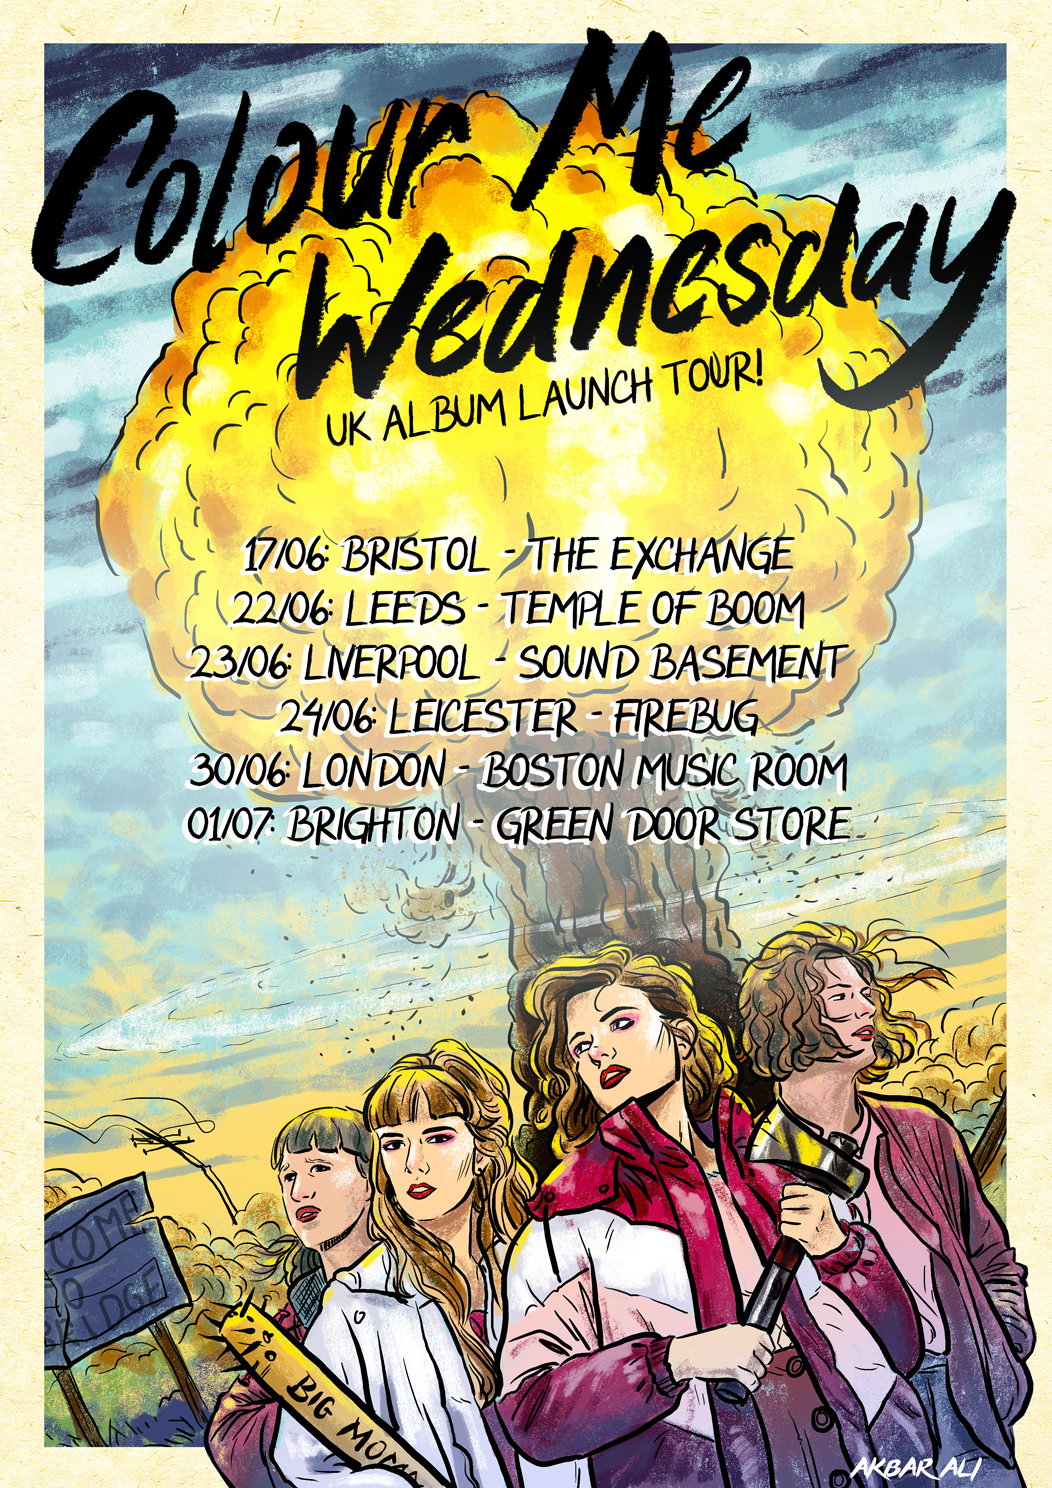 Colour-Me-Wednesday-gig-poster-June-2018 (1).jpg